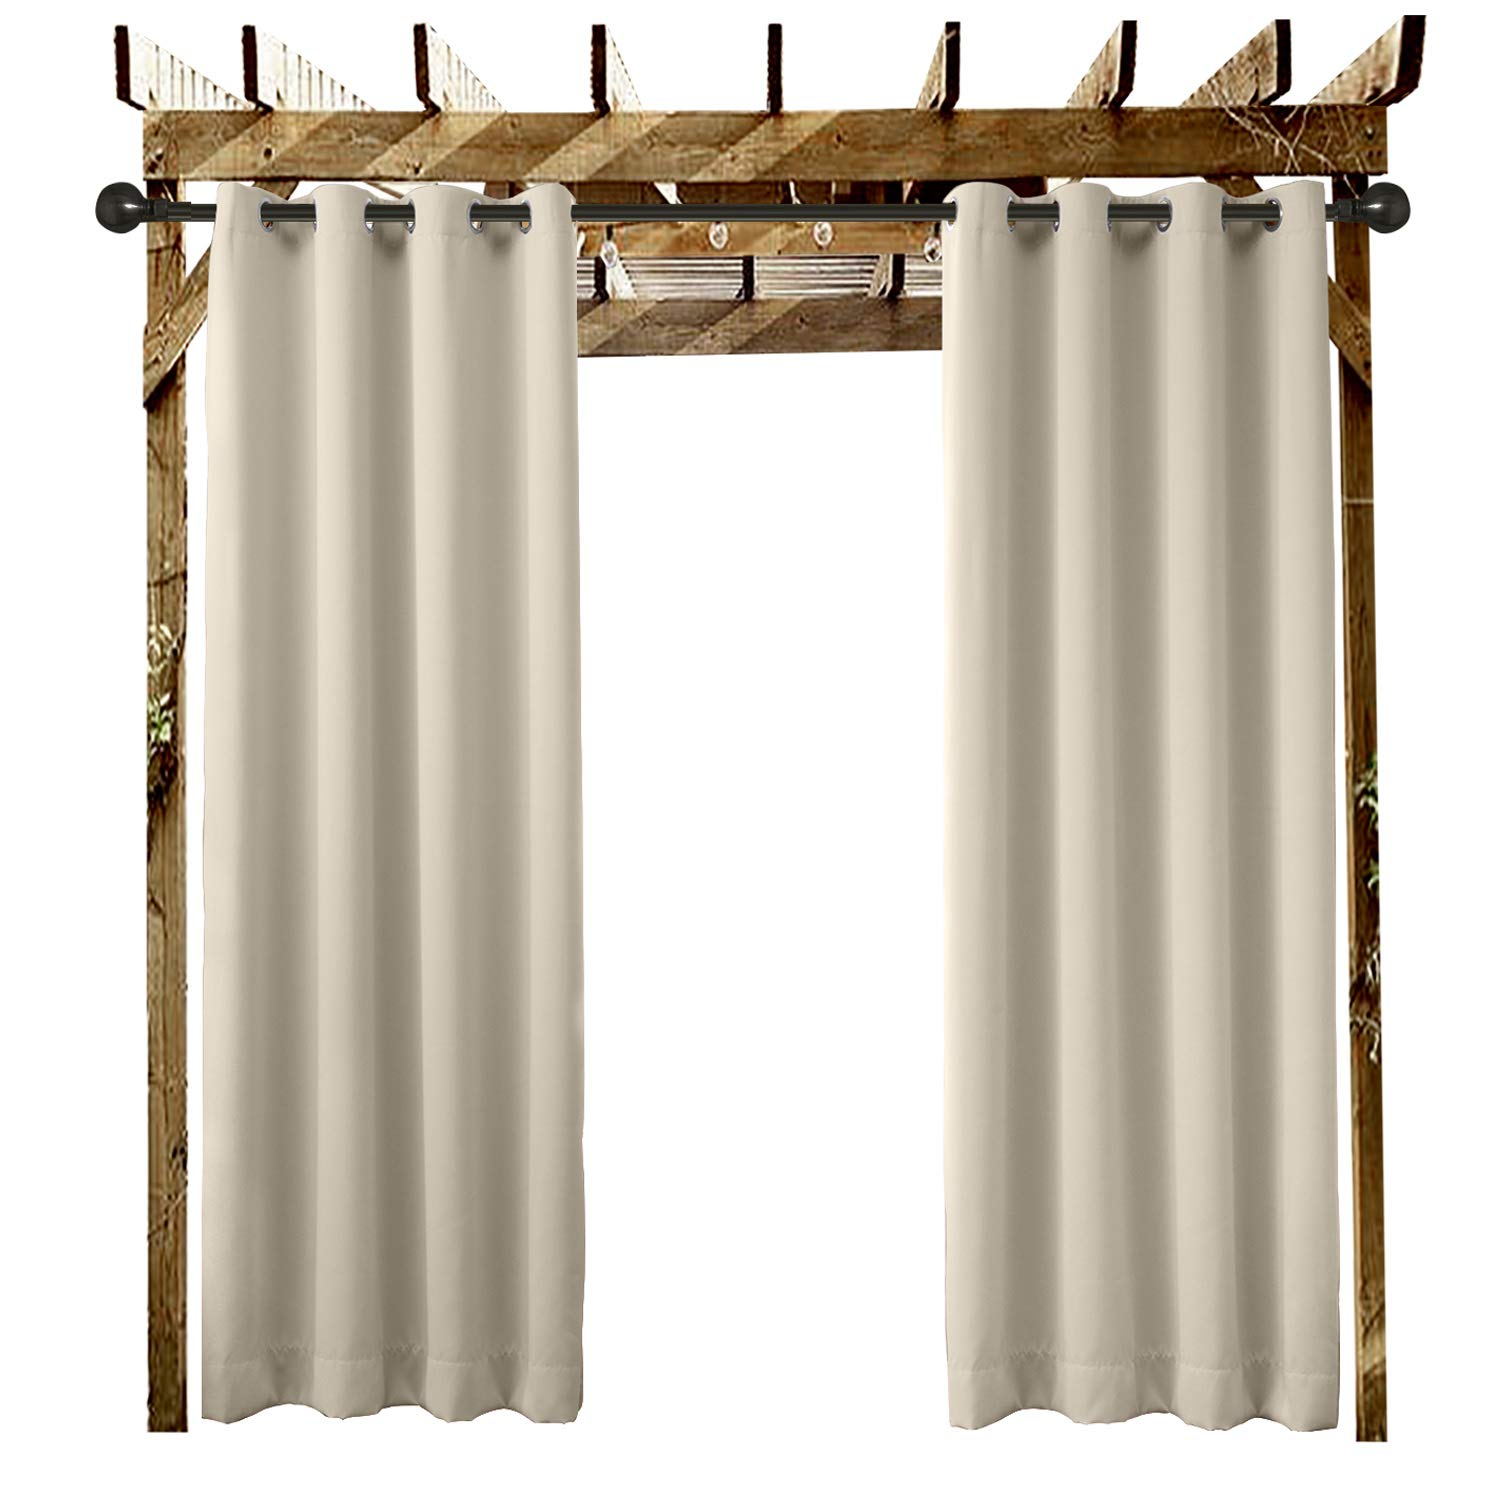 ChadMade Outdoor Waterproof Curtain Beige Extra Wide 120'' W x 96'' L Grommet Eyelet in Front Porch Pergola Cabana Covered Patio Gazebo Dock and Beach Home (1 Panel)